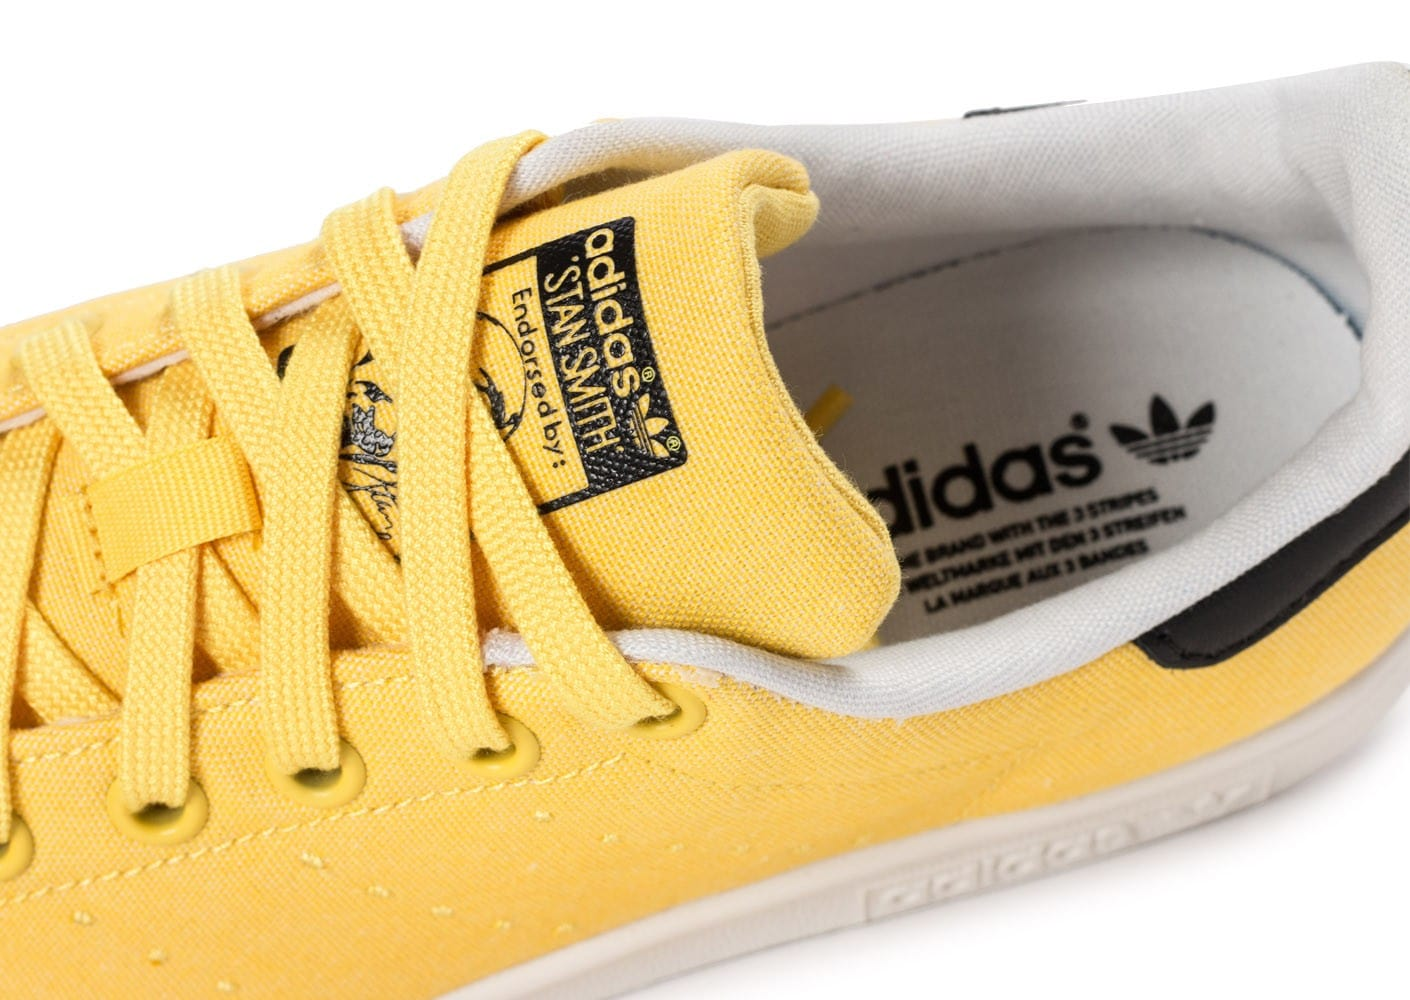 lowest price 61741 1be27 ... Chaussures adidas Stan Smith W Spring Yellow BBQ vue dessus